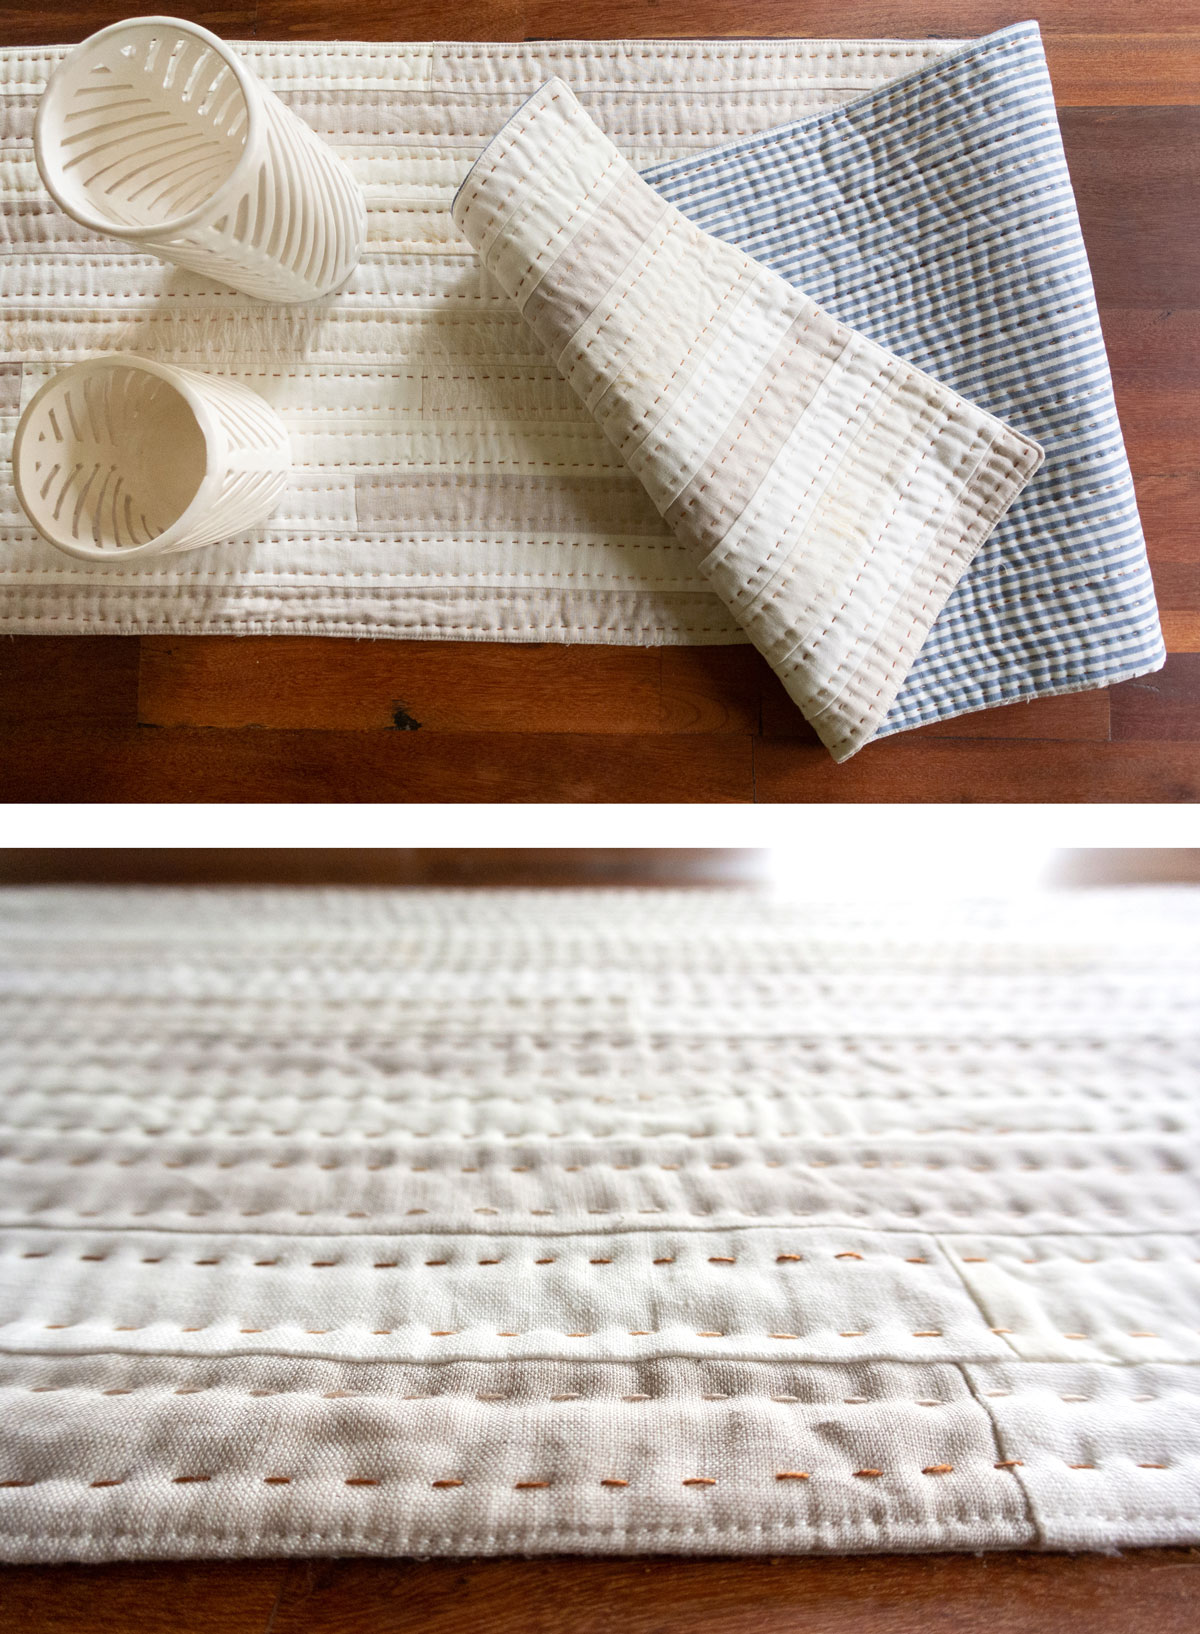 5 Small and Inexpensive DIY Sewing Christmas Gifts! Make a quilted table runner with this free tutorial. suzyquilts.com #quiltedtablerunner #ChristmasDIY